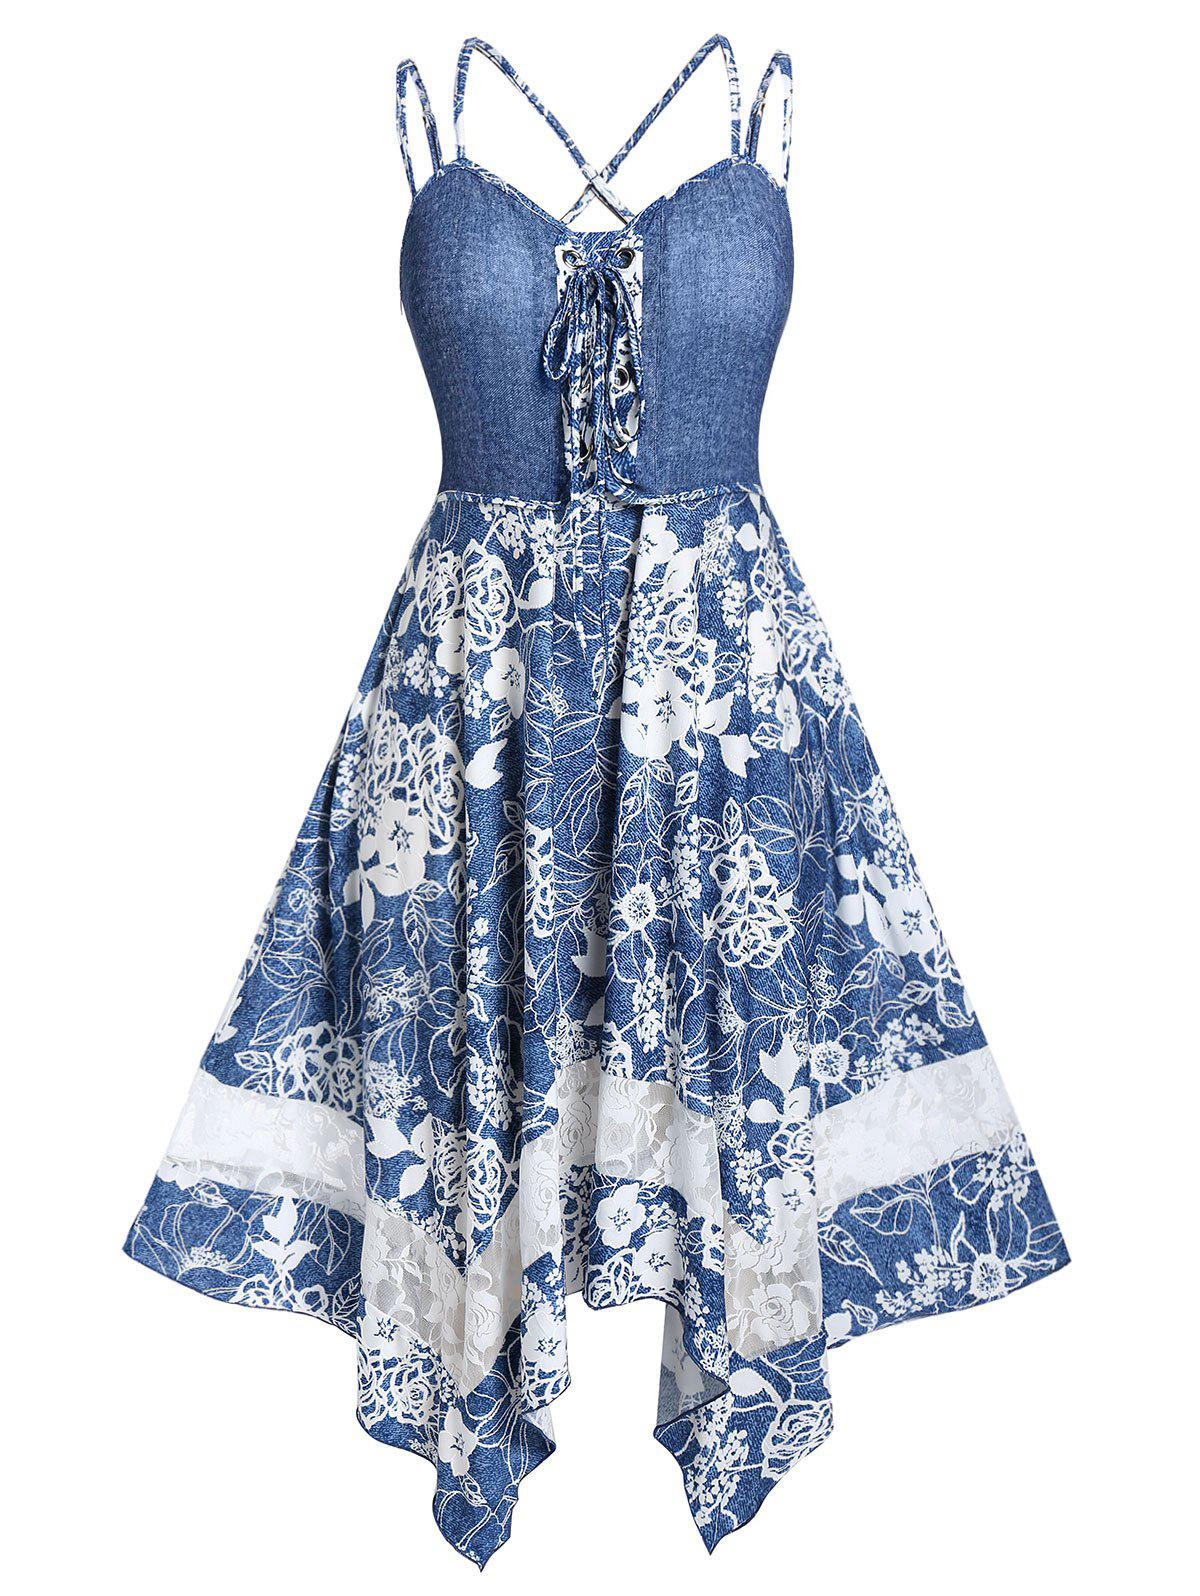 Plus Size Handkerchief Lace Up Floral Dress - BLUE GRAY 5X